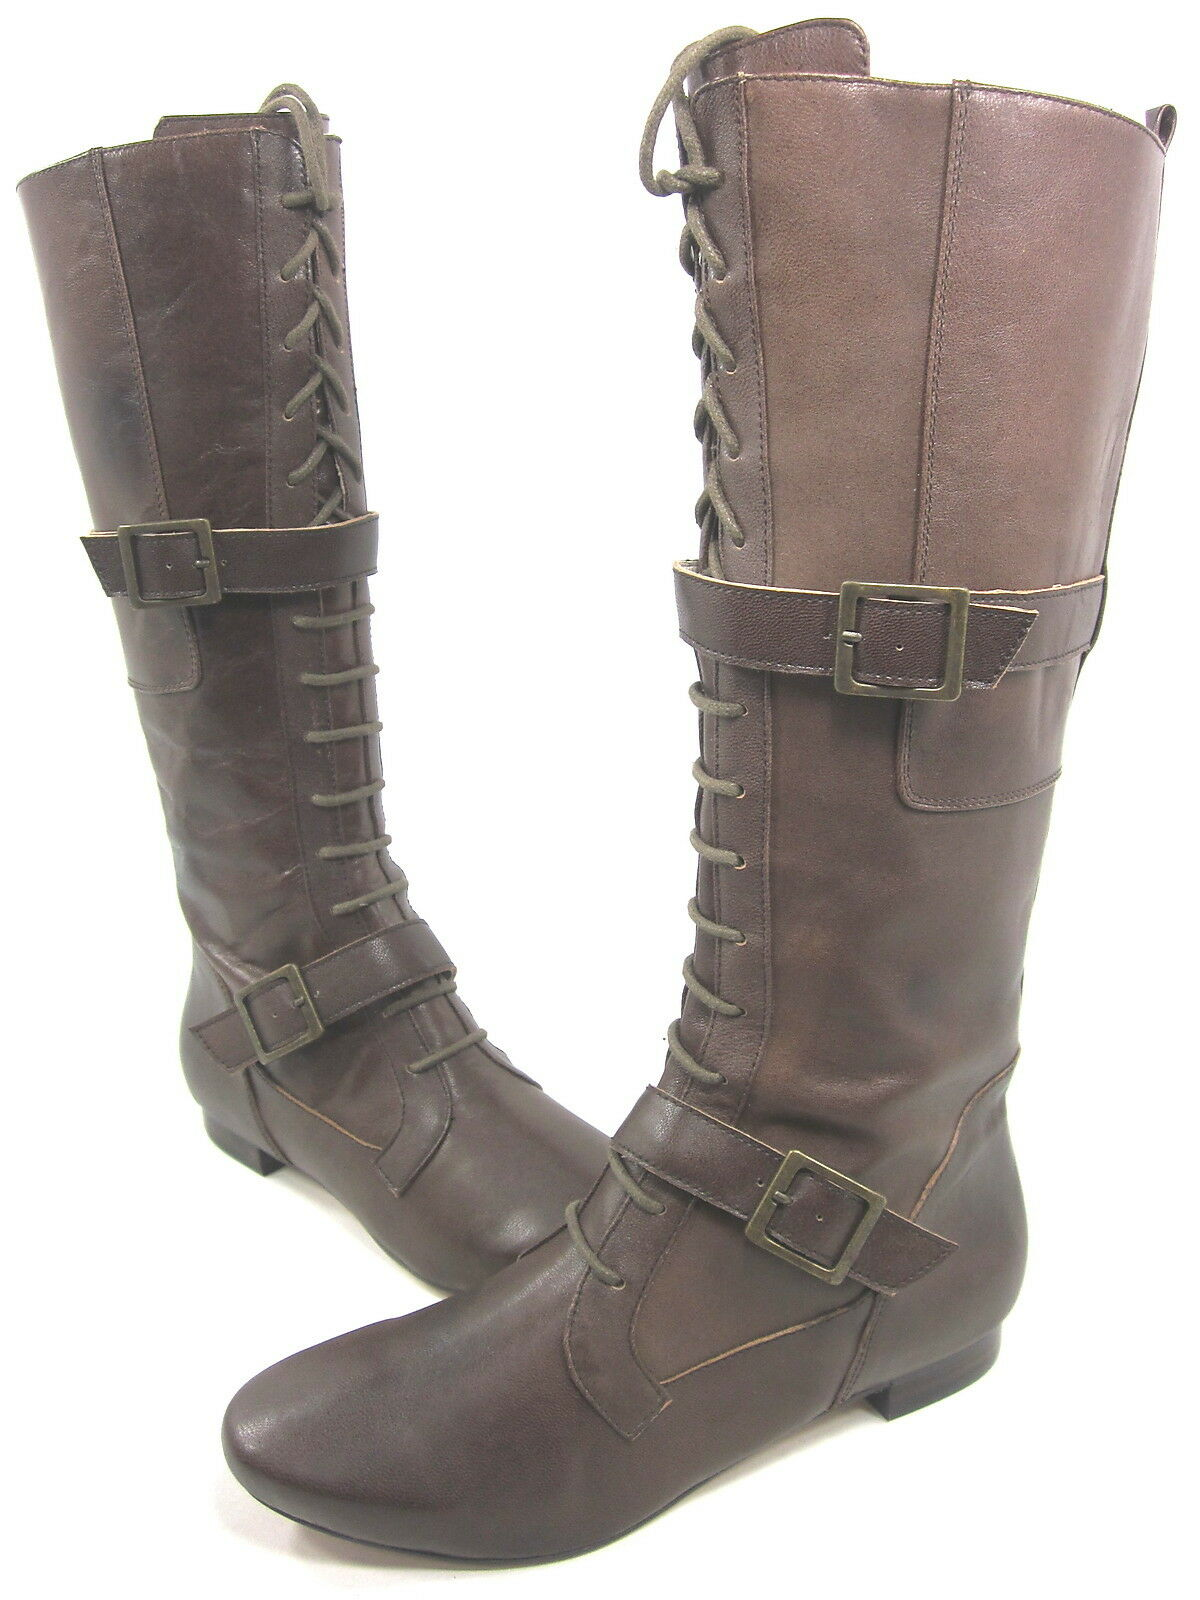 FARYLROBIN, LANCE, KNEE-HIGH BOOT, Donna, BROWN, US 8M, LEATHER, NEW W/O BOX